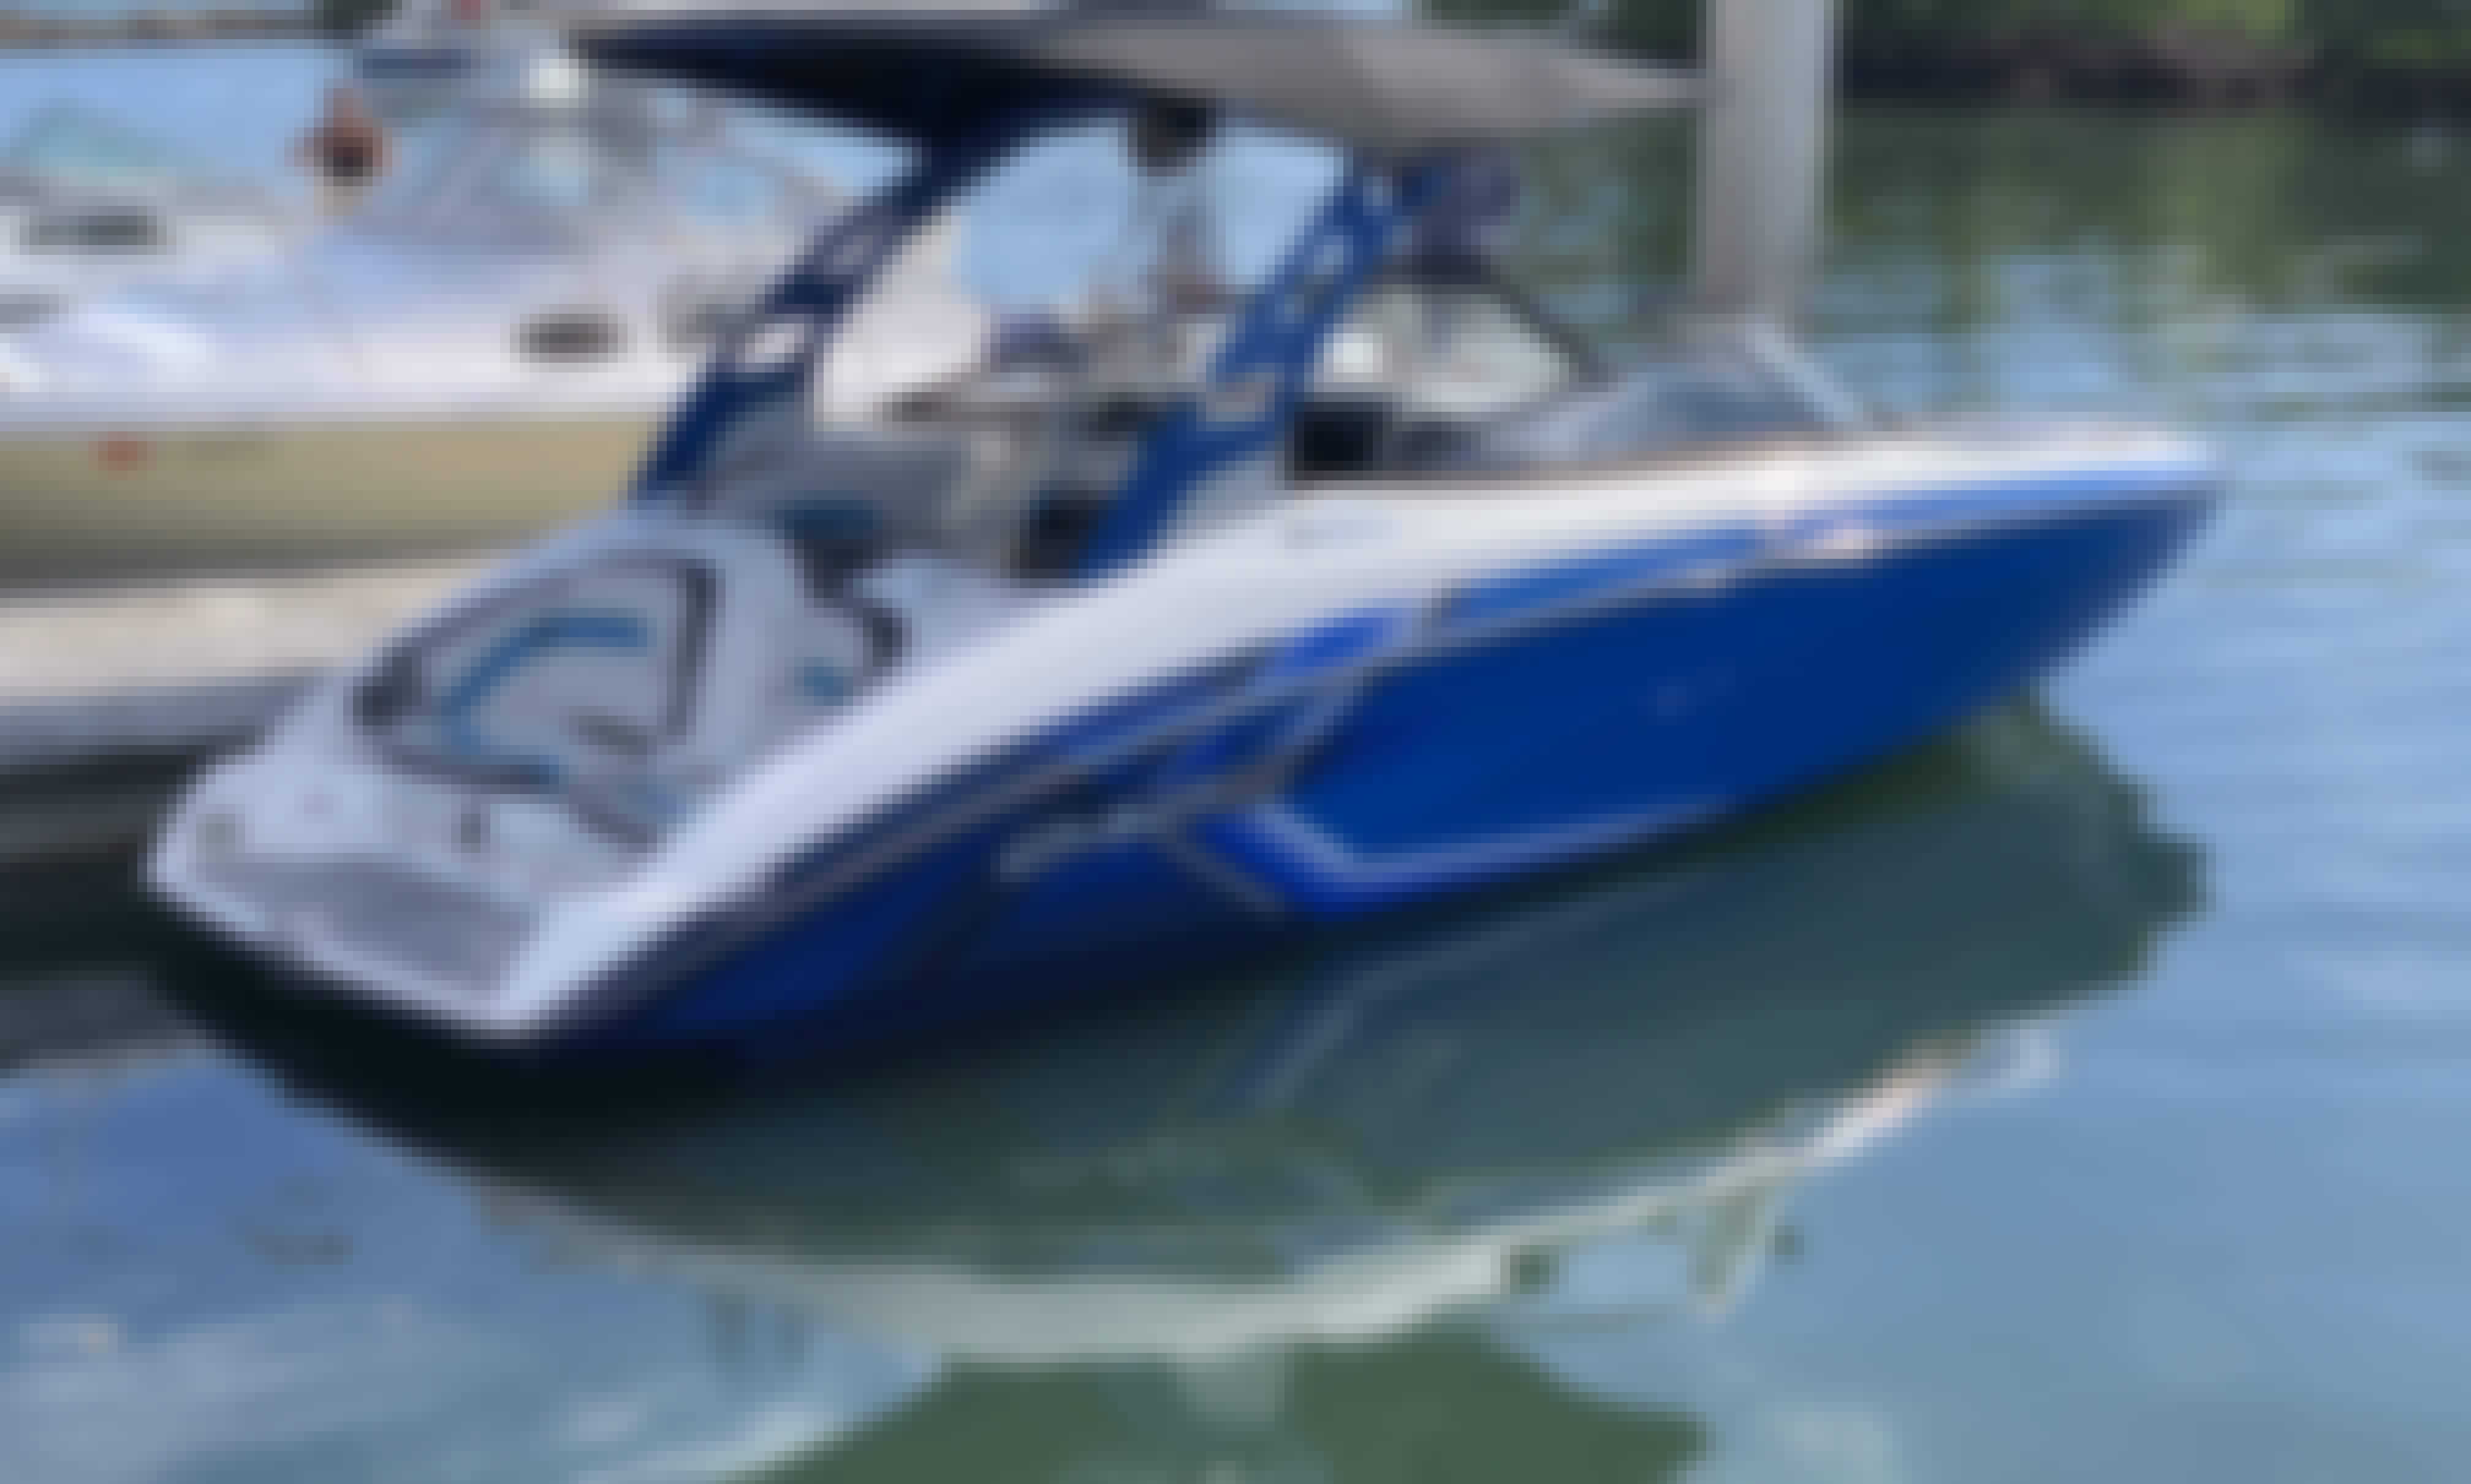 Yamaha 242x E-Series Bowrider - Delivered to a Boat Ramp near You!